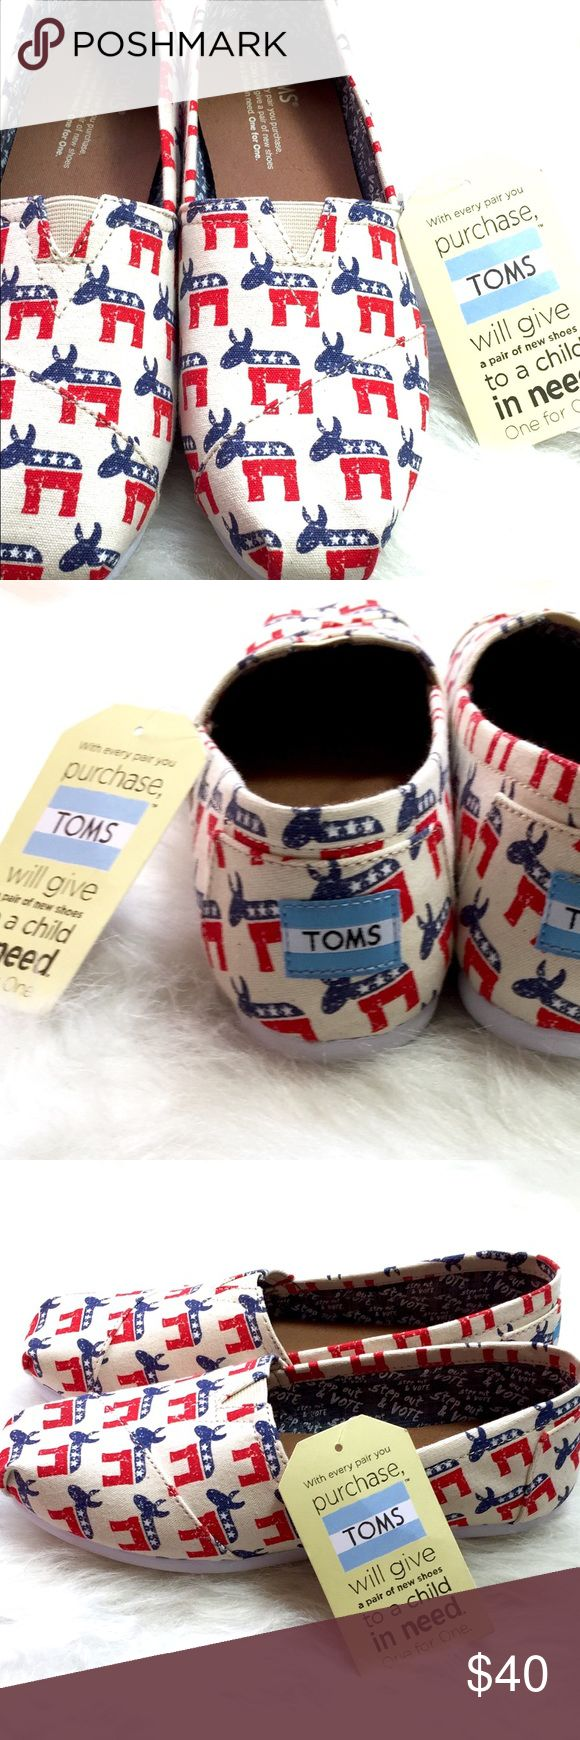 """VOTE TOMS DEMOCRATIC DONKEY slip on loafers! HURRY & GRAB FOR NOV 8th!! Wear your always fashionable registration on your feet with these vegan leather limited edition Election Day TOMS. USA red, white & blue Democratic Donkeys flaunt your political style and will pair perfectly with any pant, top, skirt, jogger or styrofoam voter hat in your closet. Inside chambray lining uplifts our right with """"Step out & Vote."""" Encourage others! Get em to the poles! Wear that sticker! Regardless of…"""